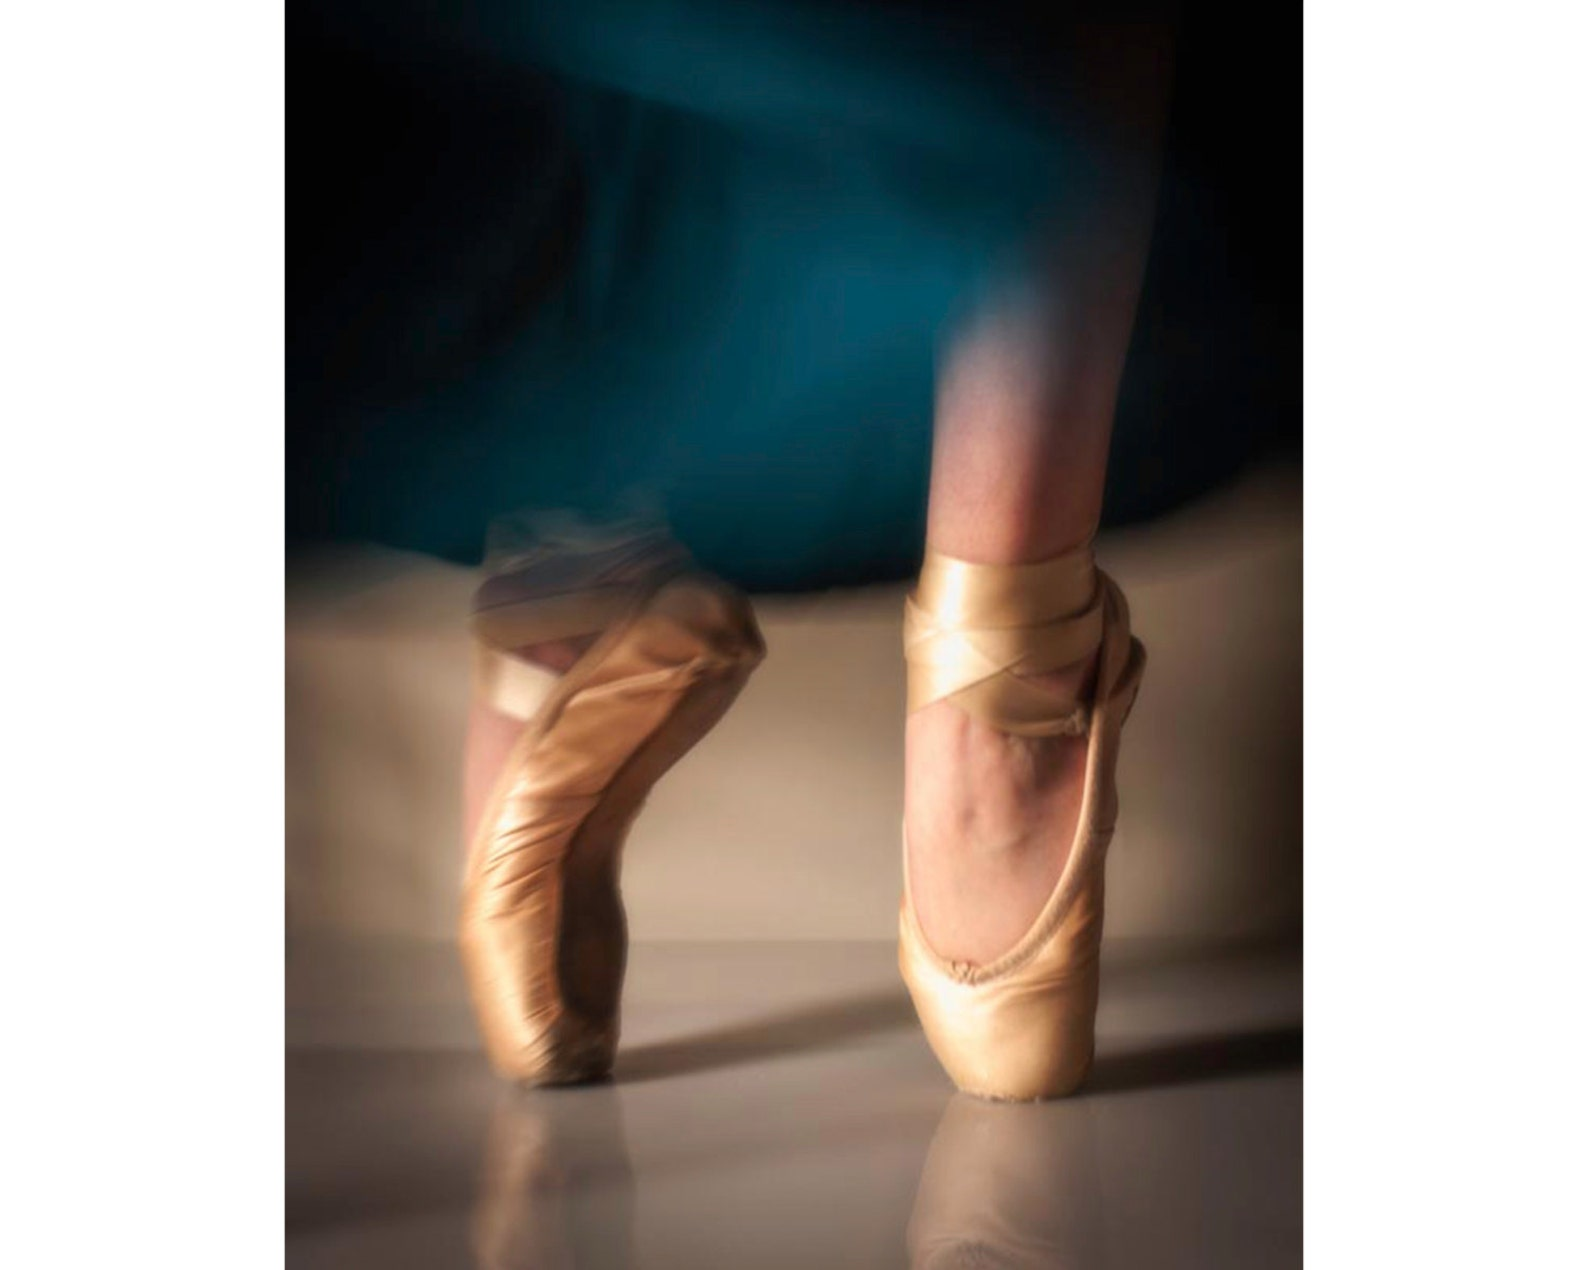 dancing ballet pointe shoes: 8x10 dance photography fine art print. available as a canvas, print or card.